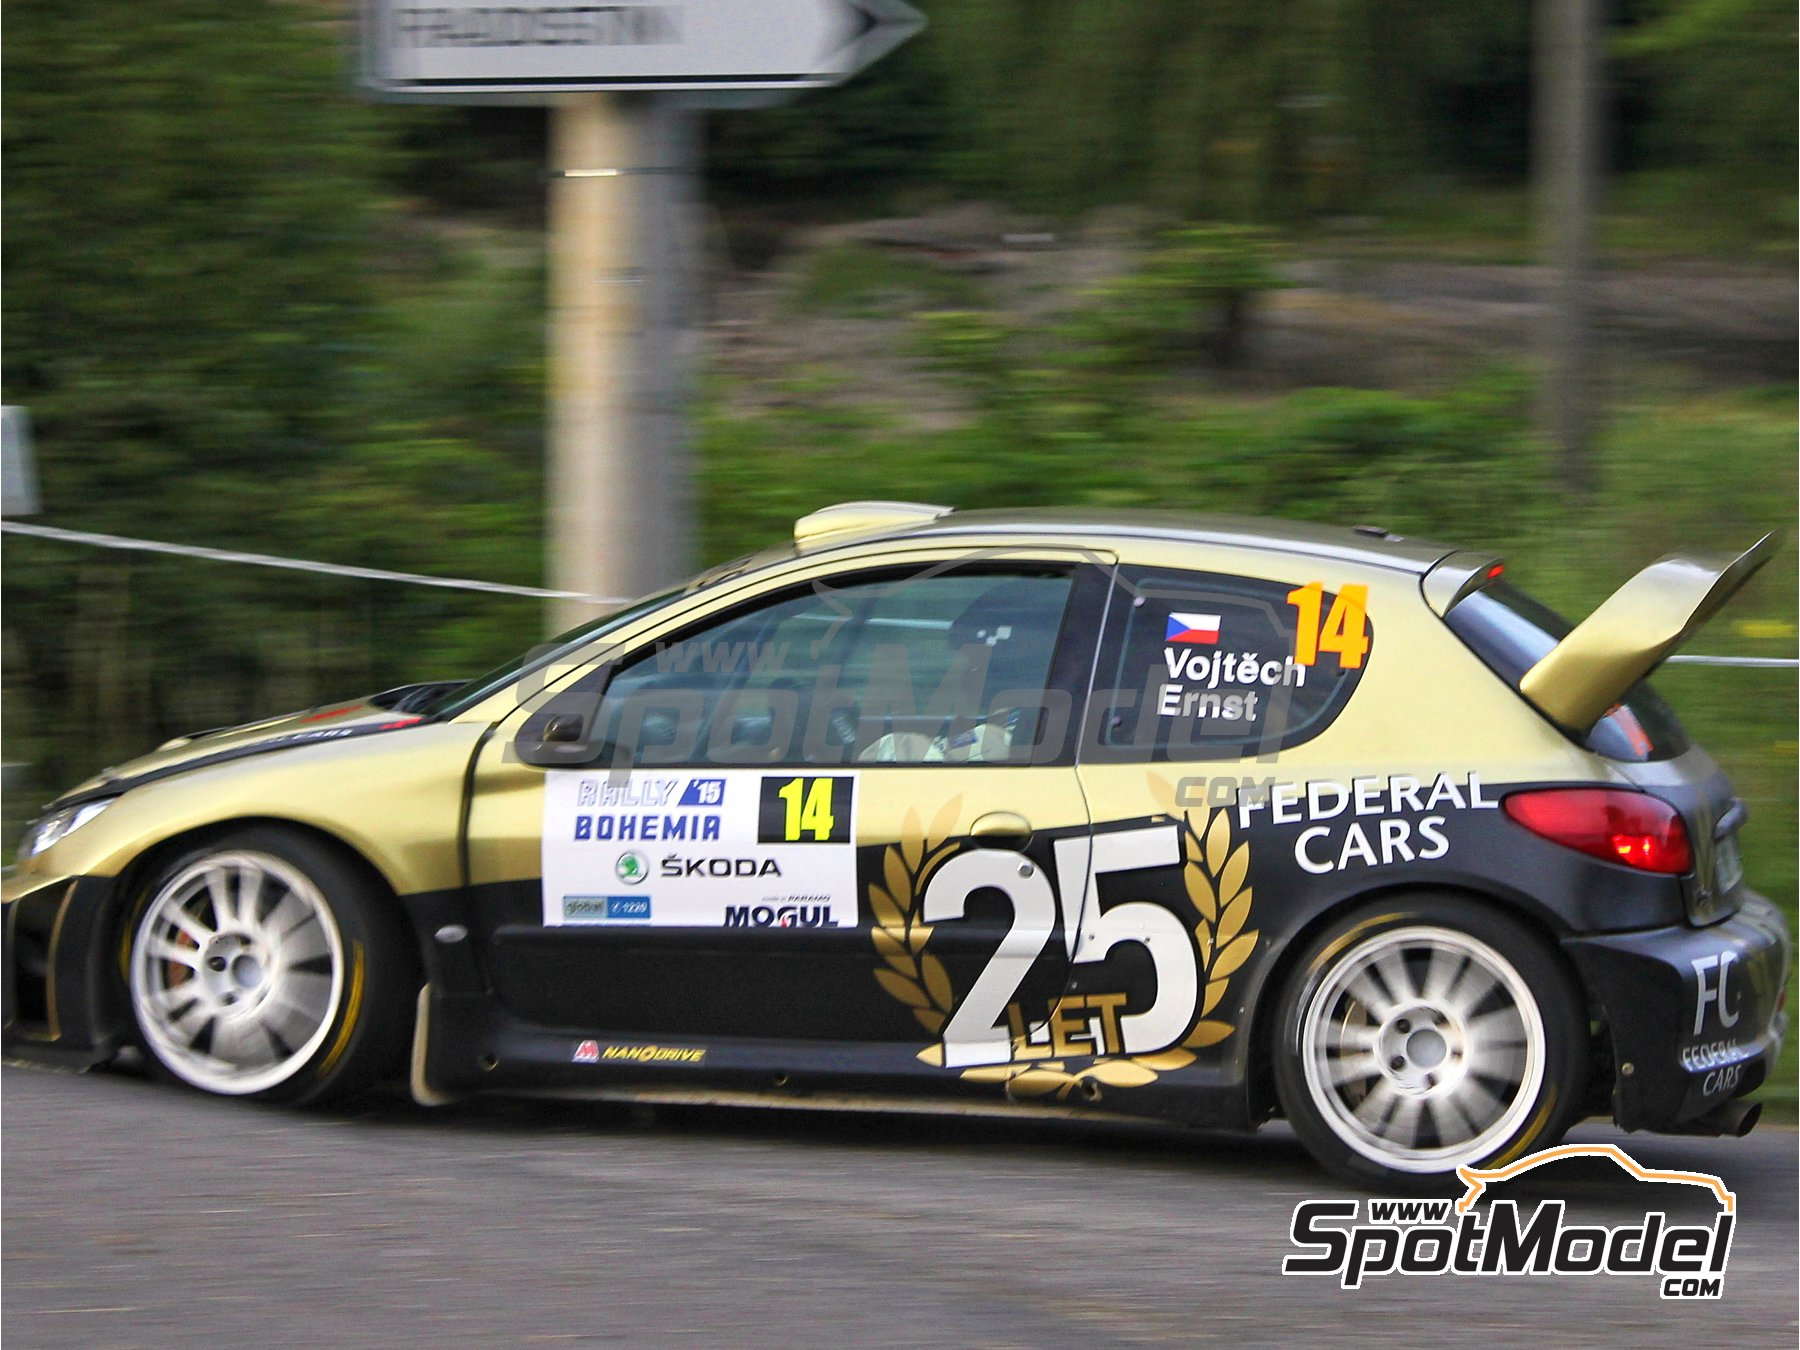 Image 11: Peugeot 206 WRC Federal Cars - Bohemia rally 2015 | Marking / livery in 1/24 scale manufactured by Reji Model (ref.REJI-206)